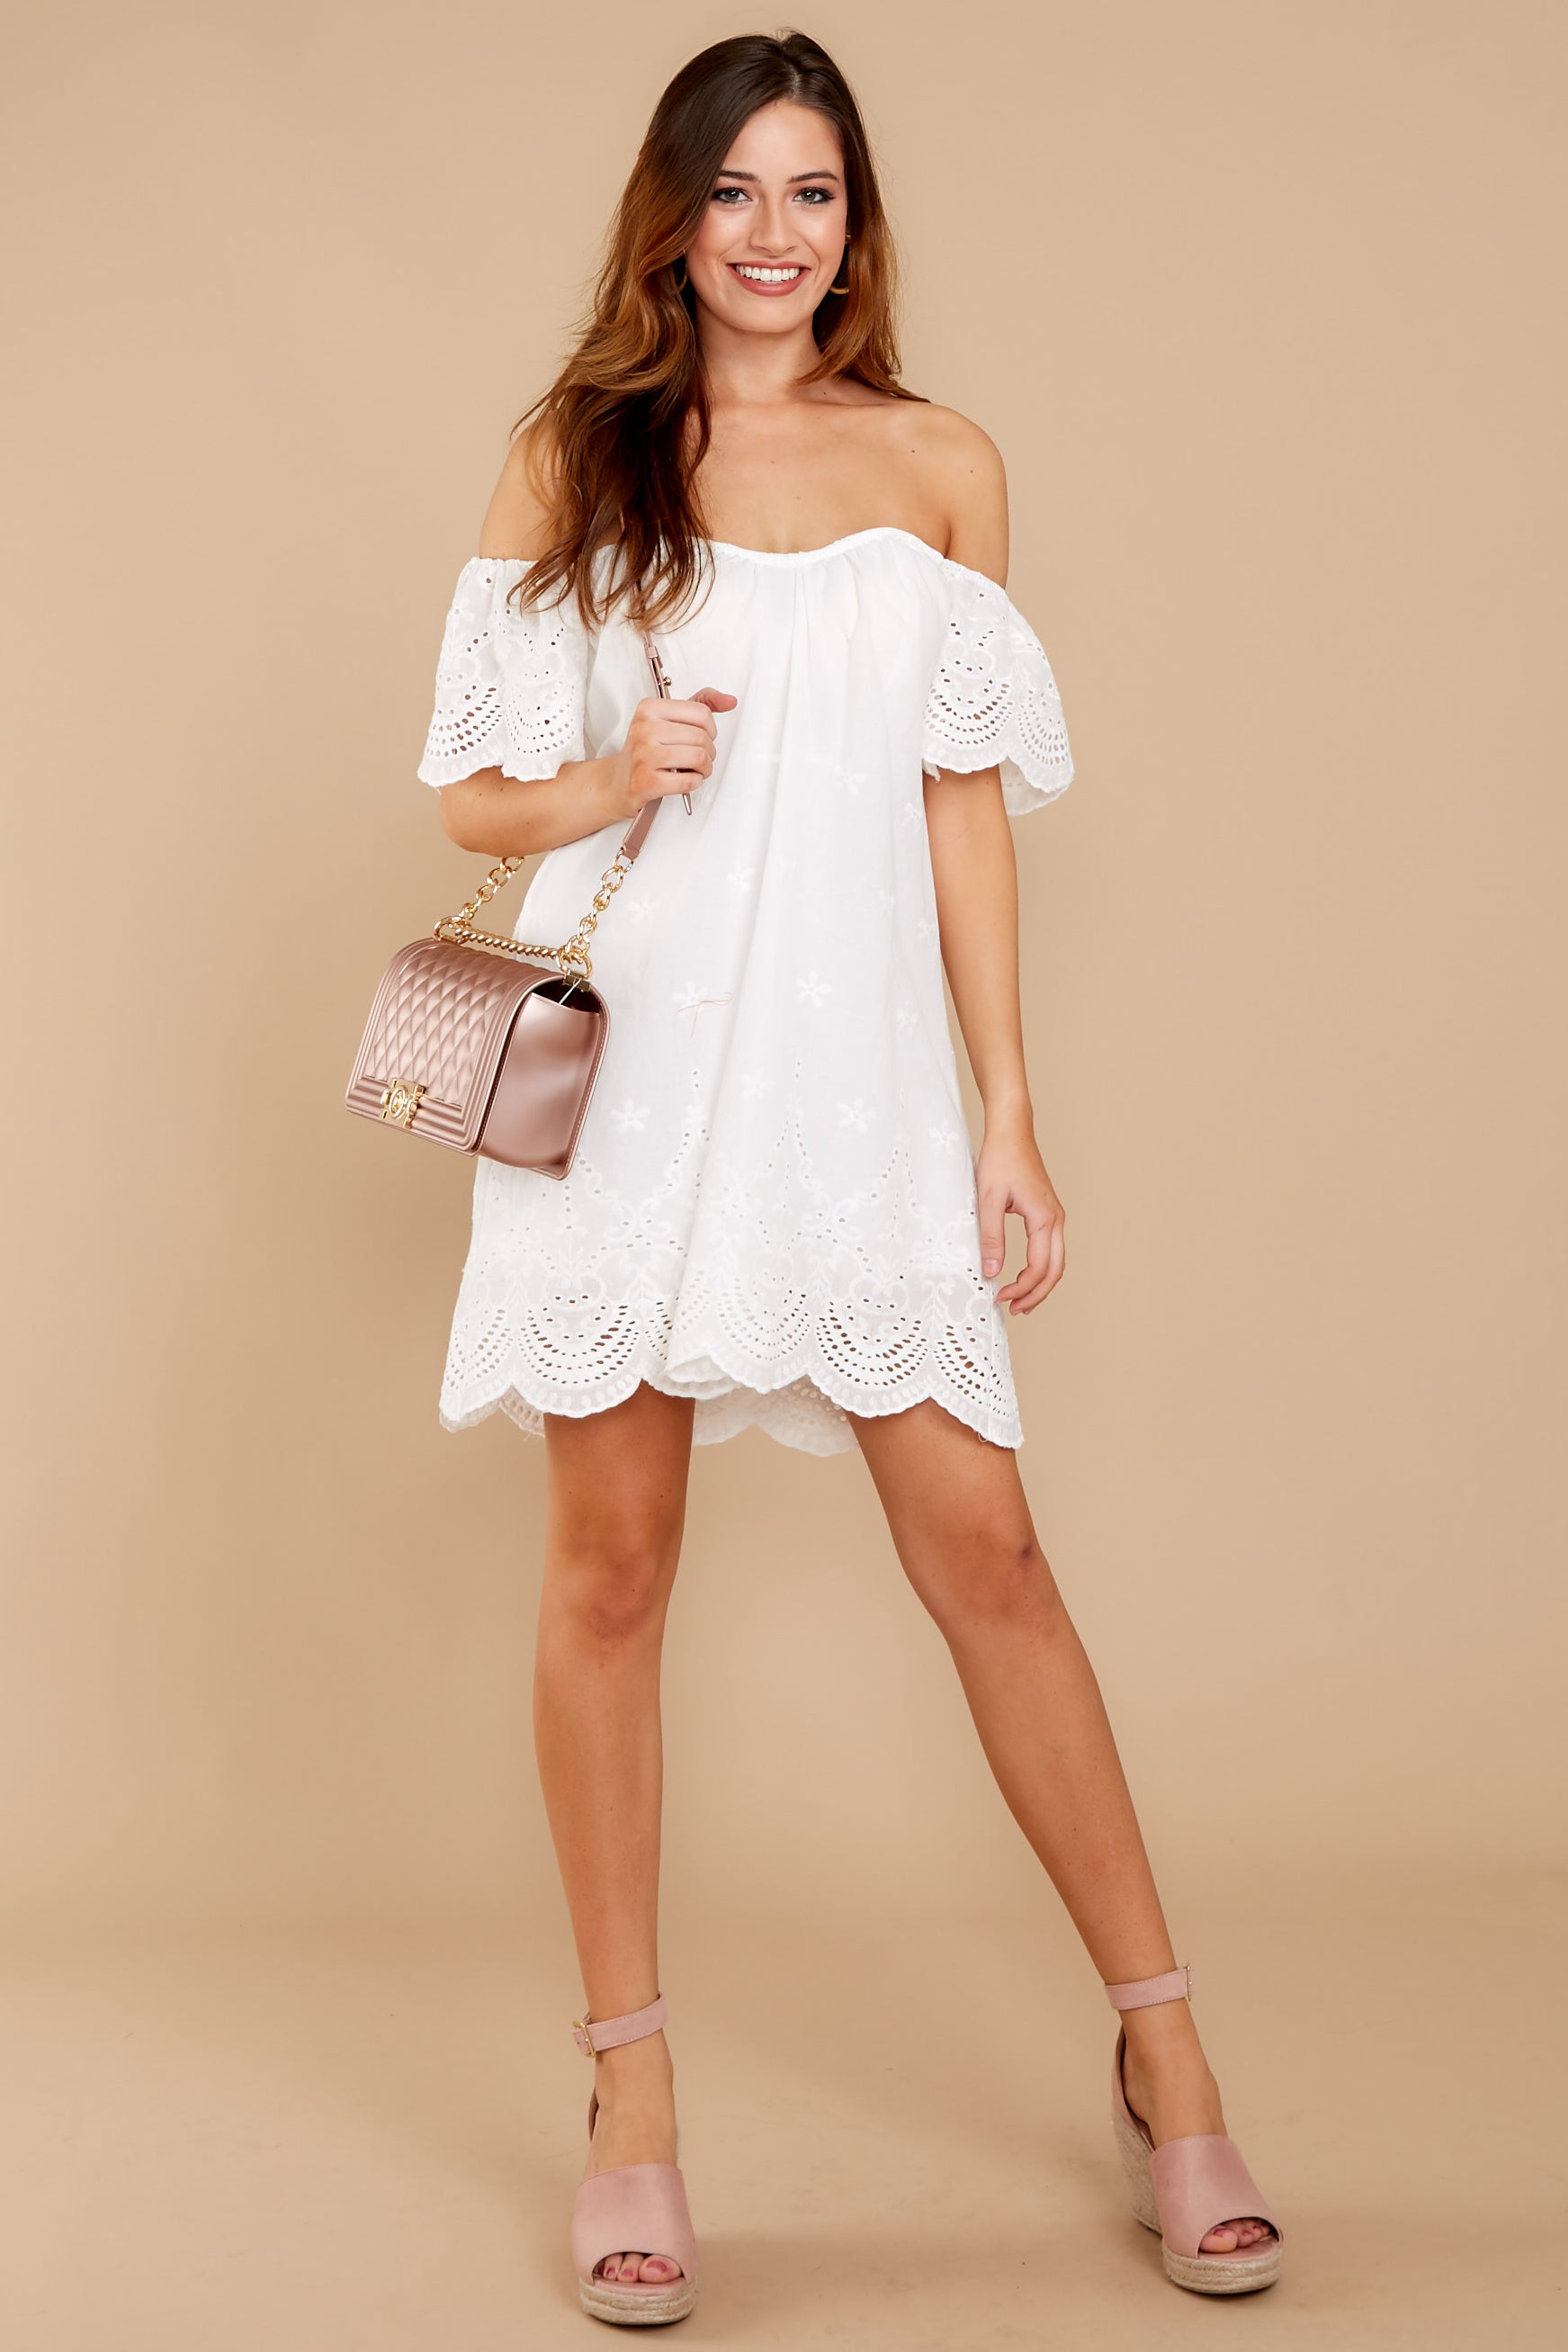 ba468c08f07d Chic Off The Shoulder Dress -Cute White Dress - Dress -  42.00 – Red ...